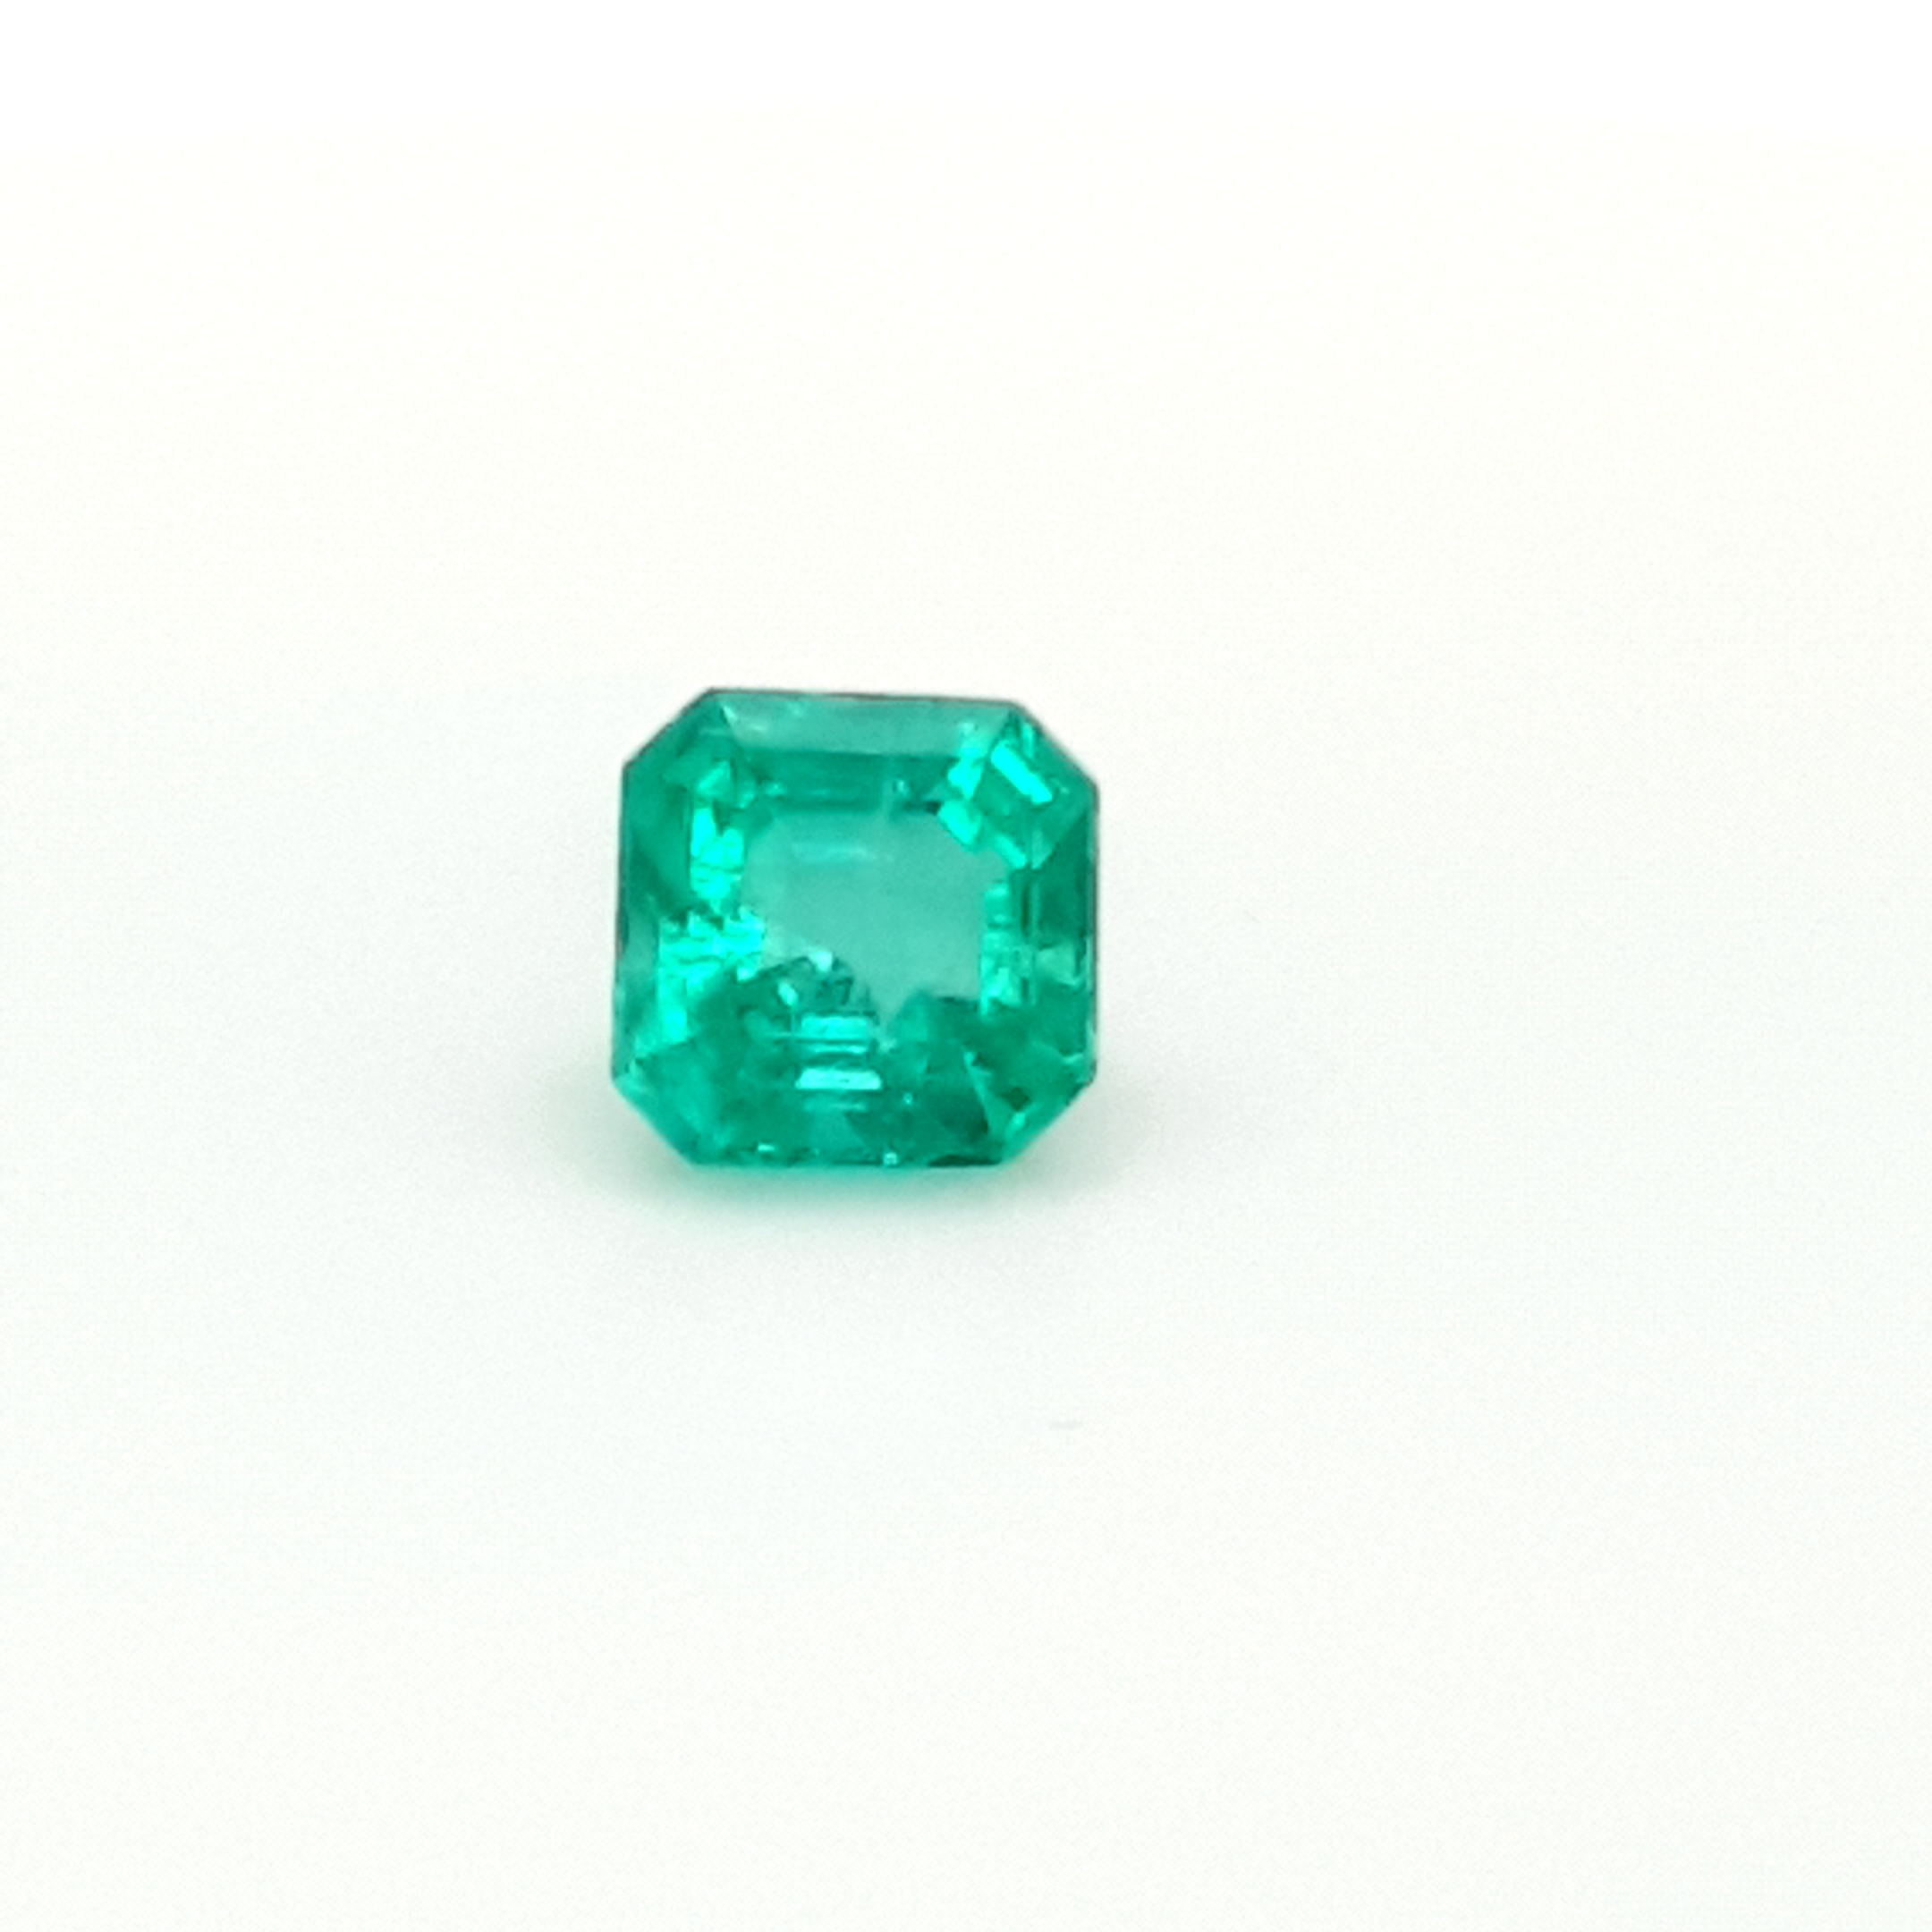 2,44ct. Emerald from Colombia EMH18D8 ClaudiaHamann__2021-03-29-13-49-00